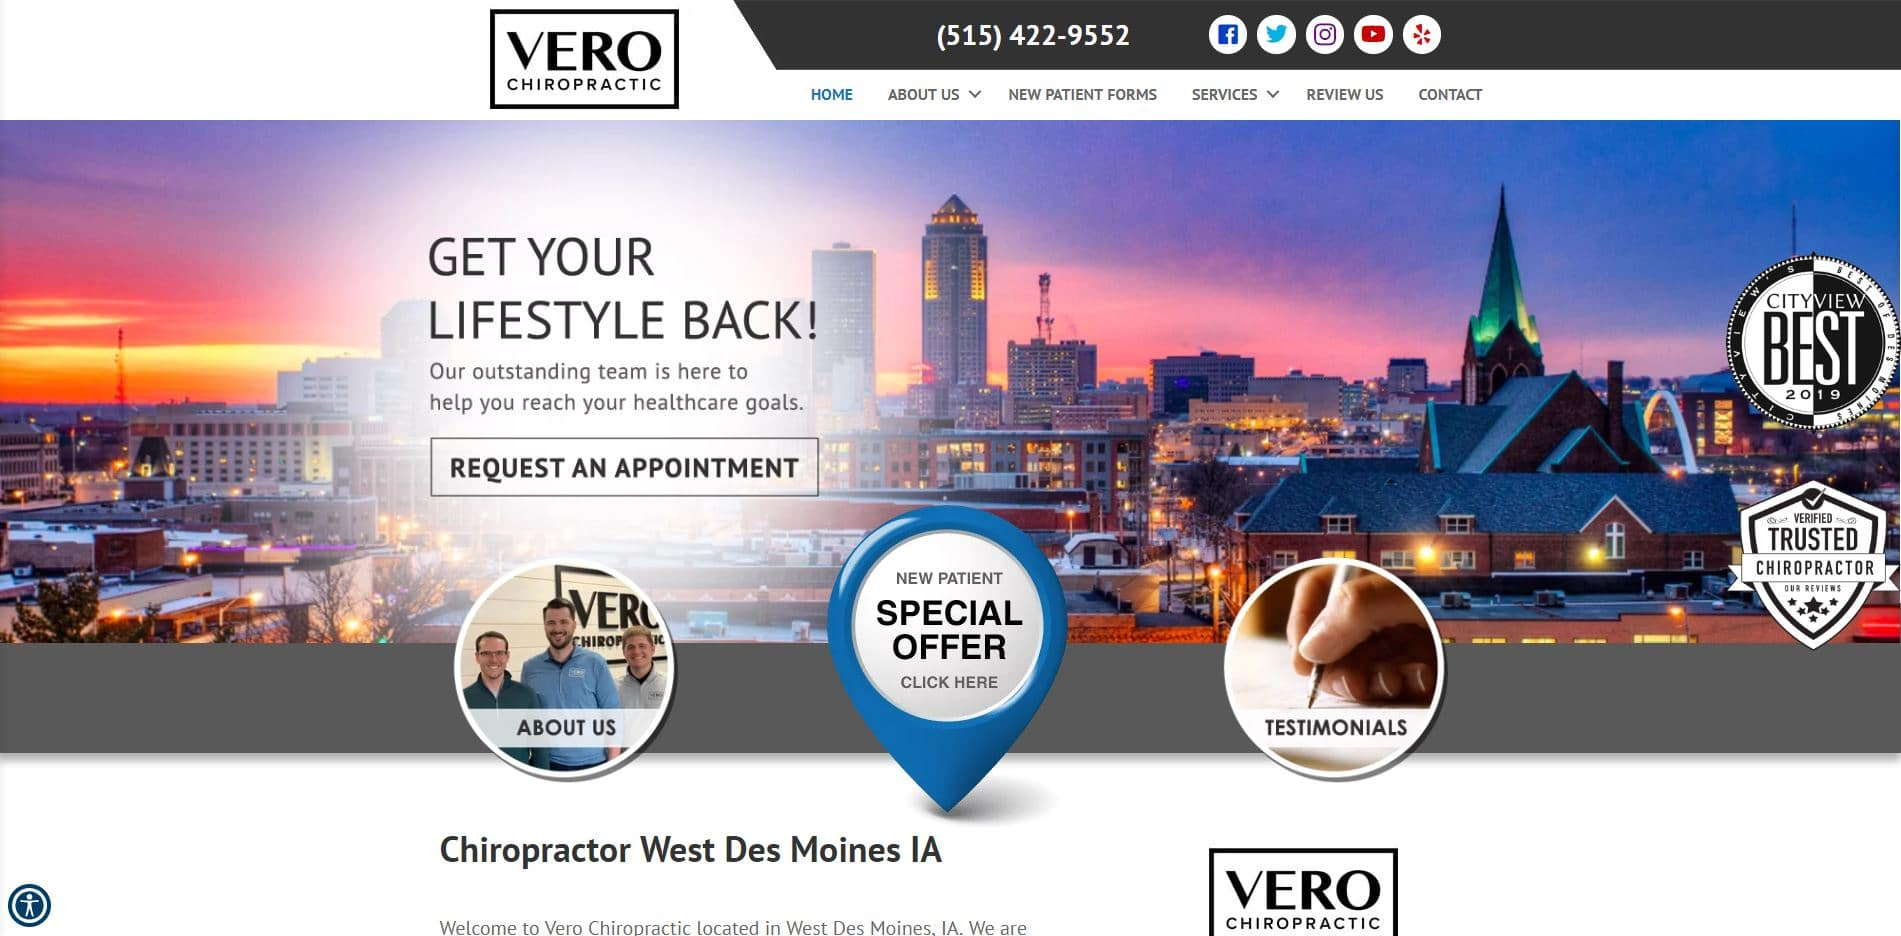 Chiropractor in West Des Moines